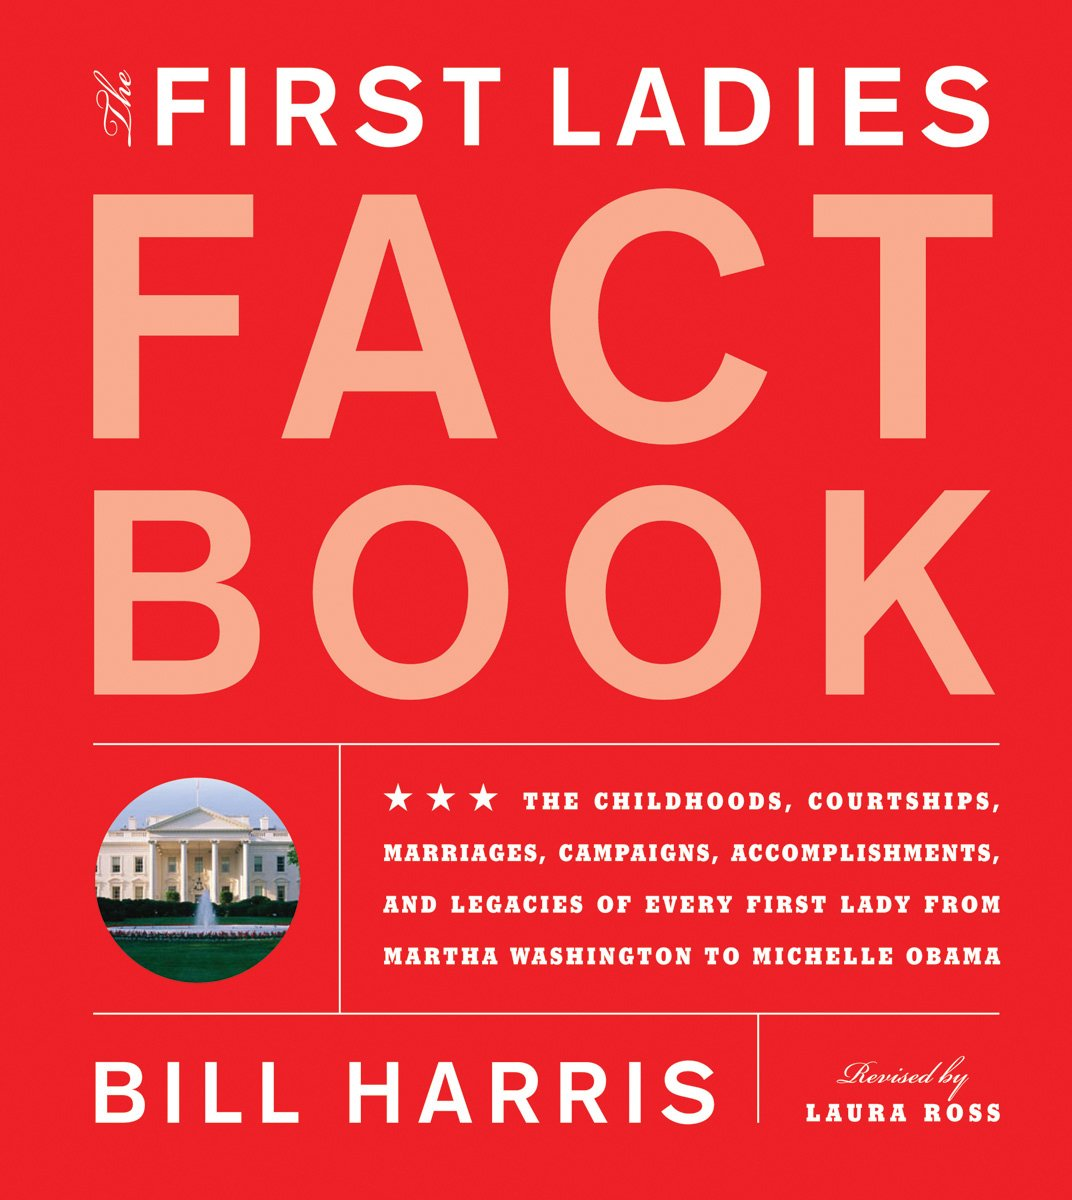 First Ladies Fact Book: Revised and Updated! The Childhoods, Courtships, Marriages, Campaigns, Accomplishments, and Legacies of Every First Lady from Martha Washington to Michelle Obama